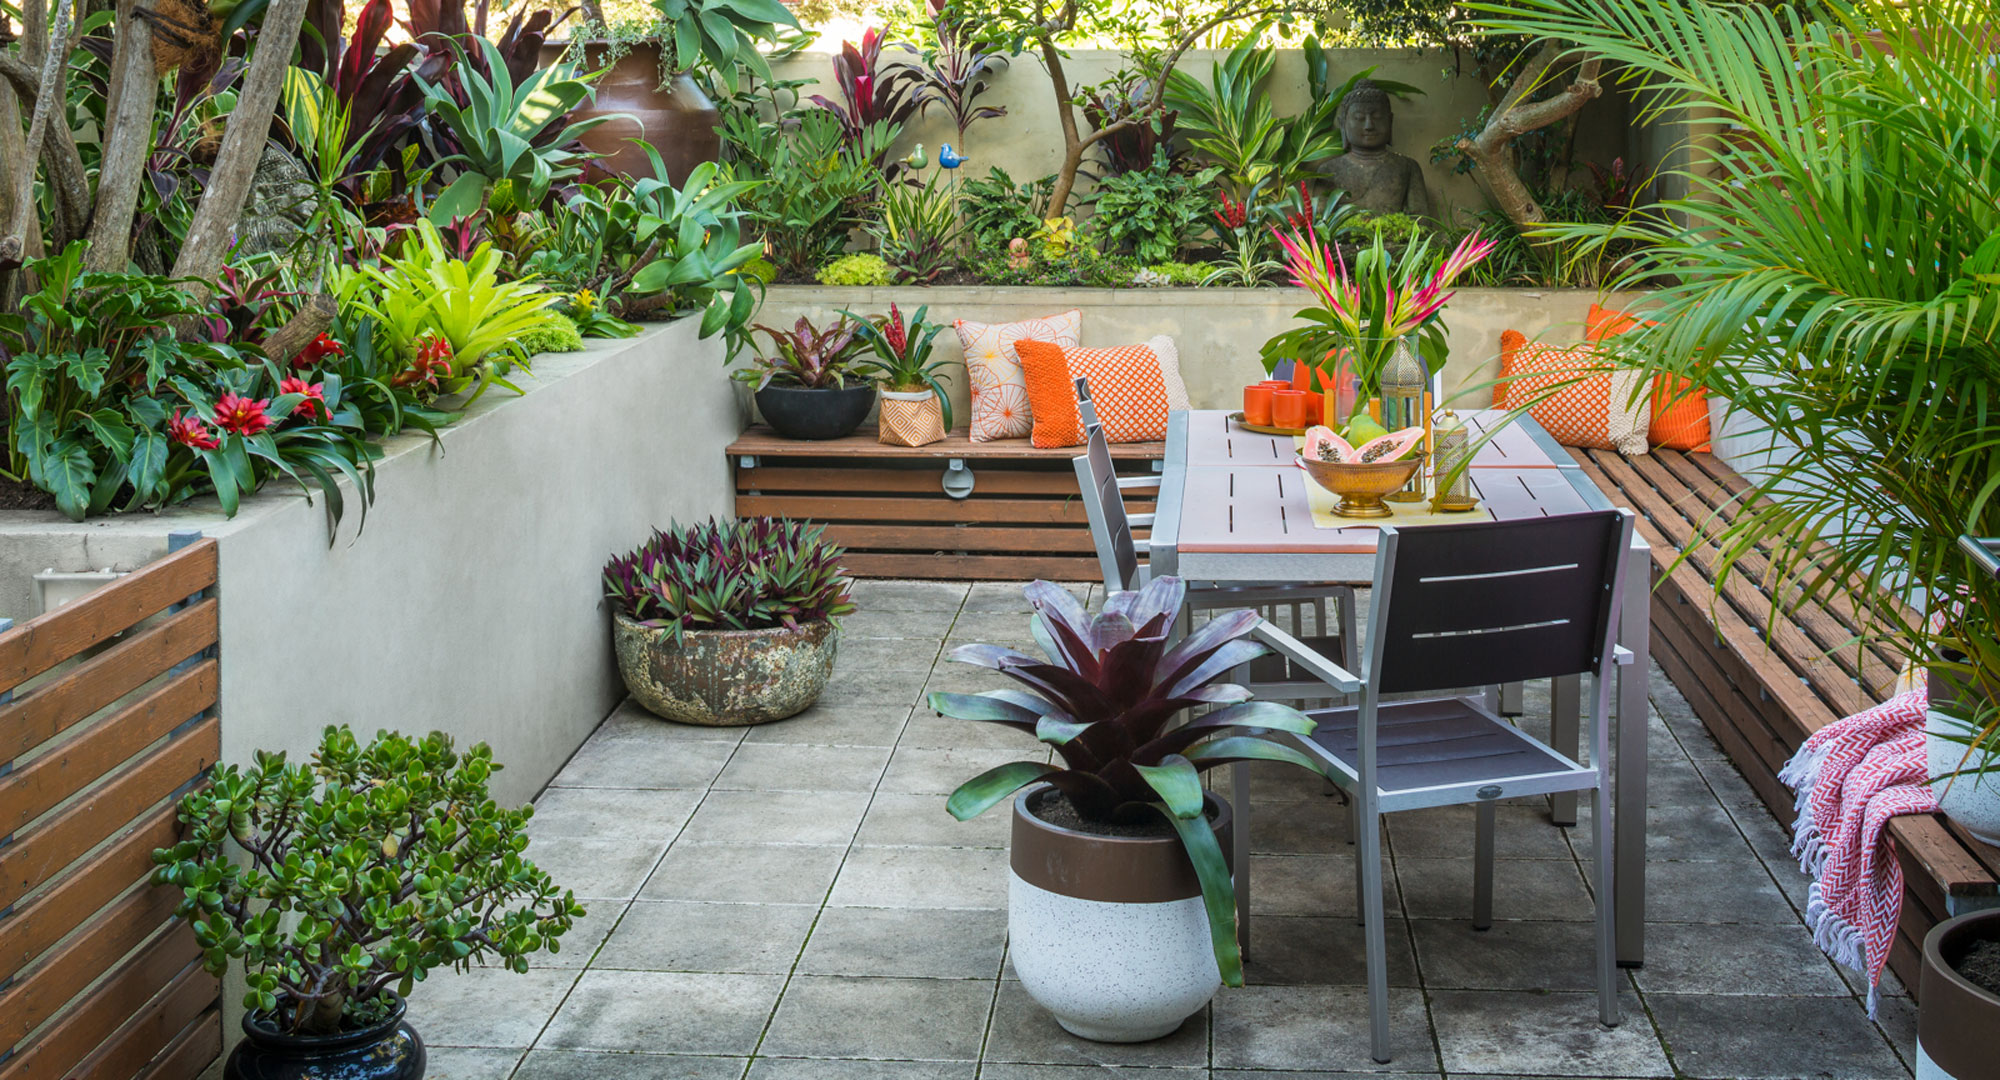 How to design your small back garden space | Better Homes ... on Tiny Back Garden Ideas id=28758